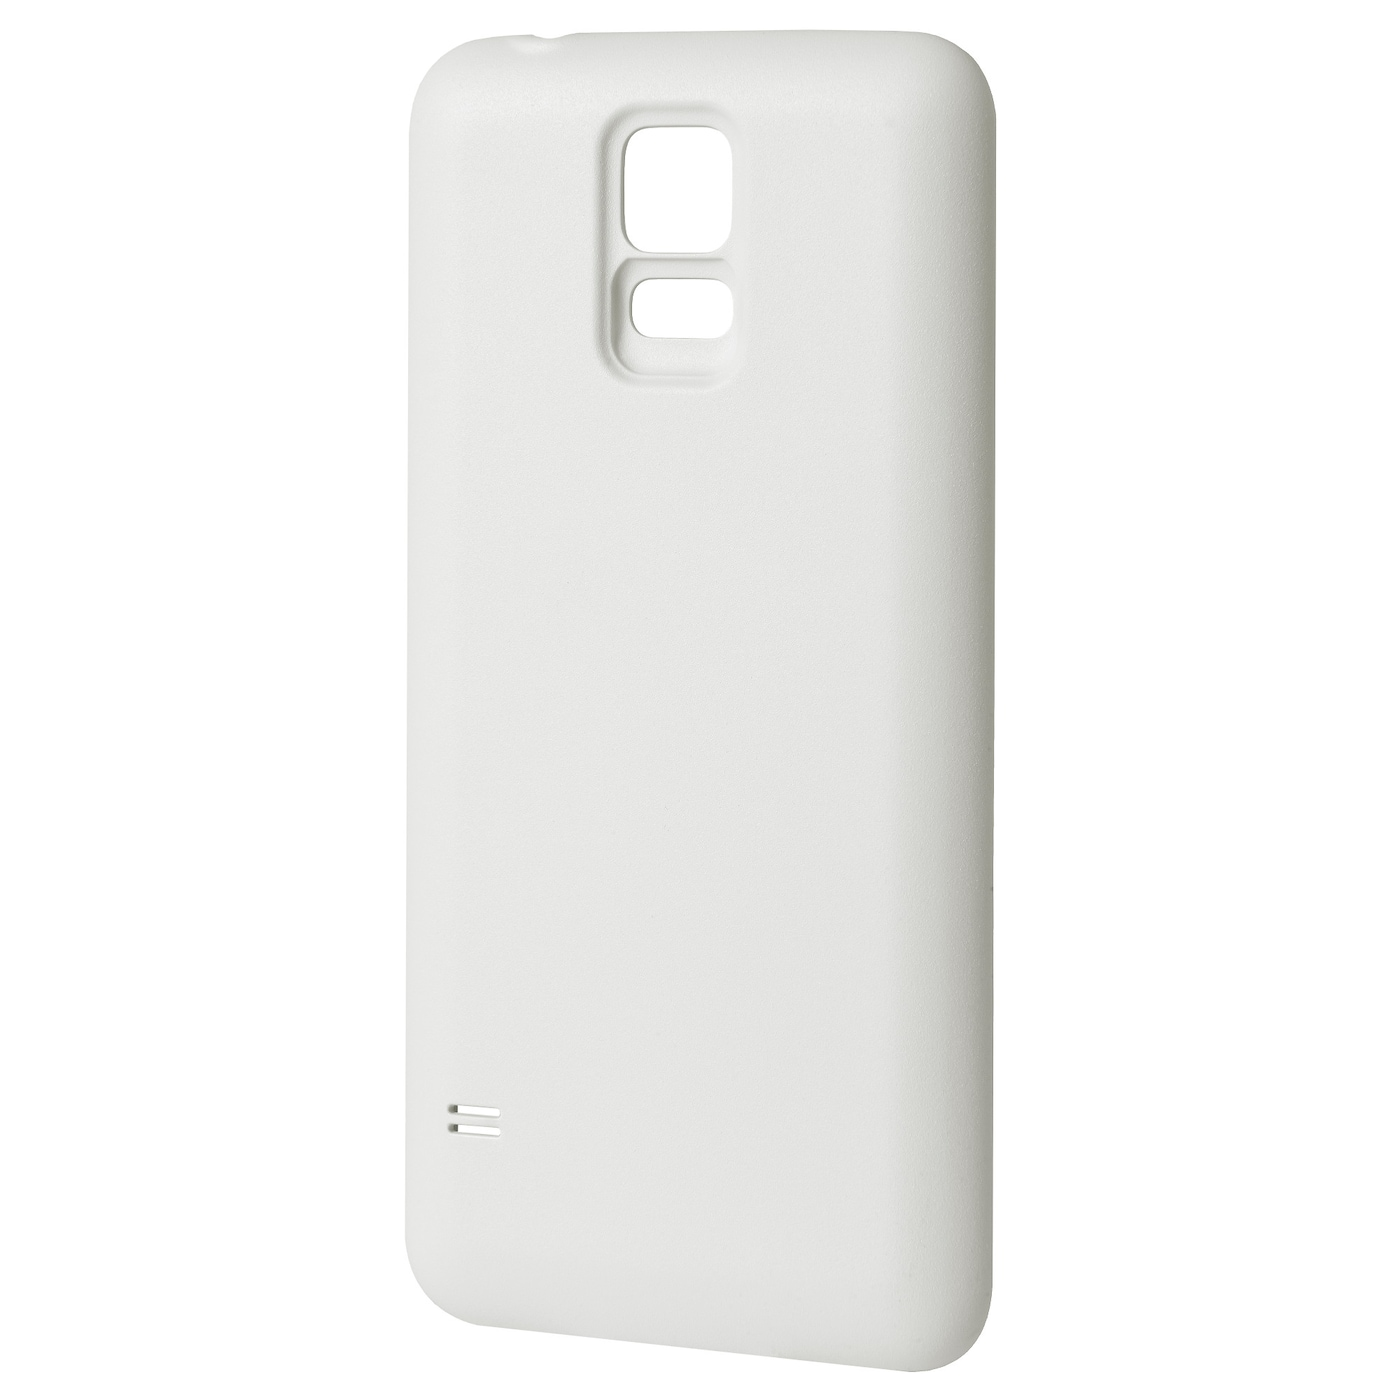 IKEA VITAHULT wireless charging cover S5 Slim design; easy to place in small spaces.